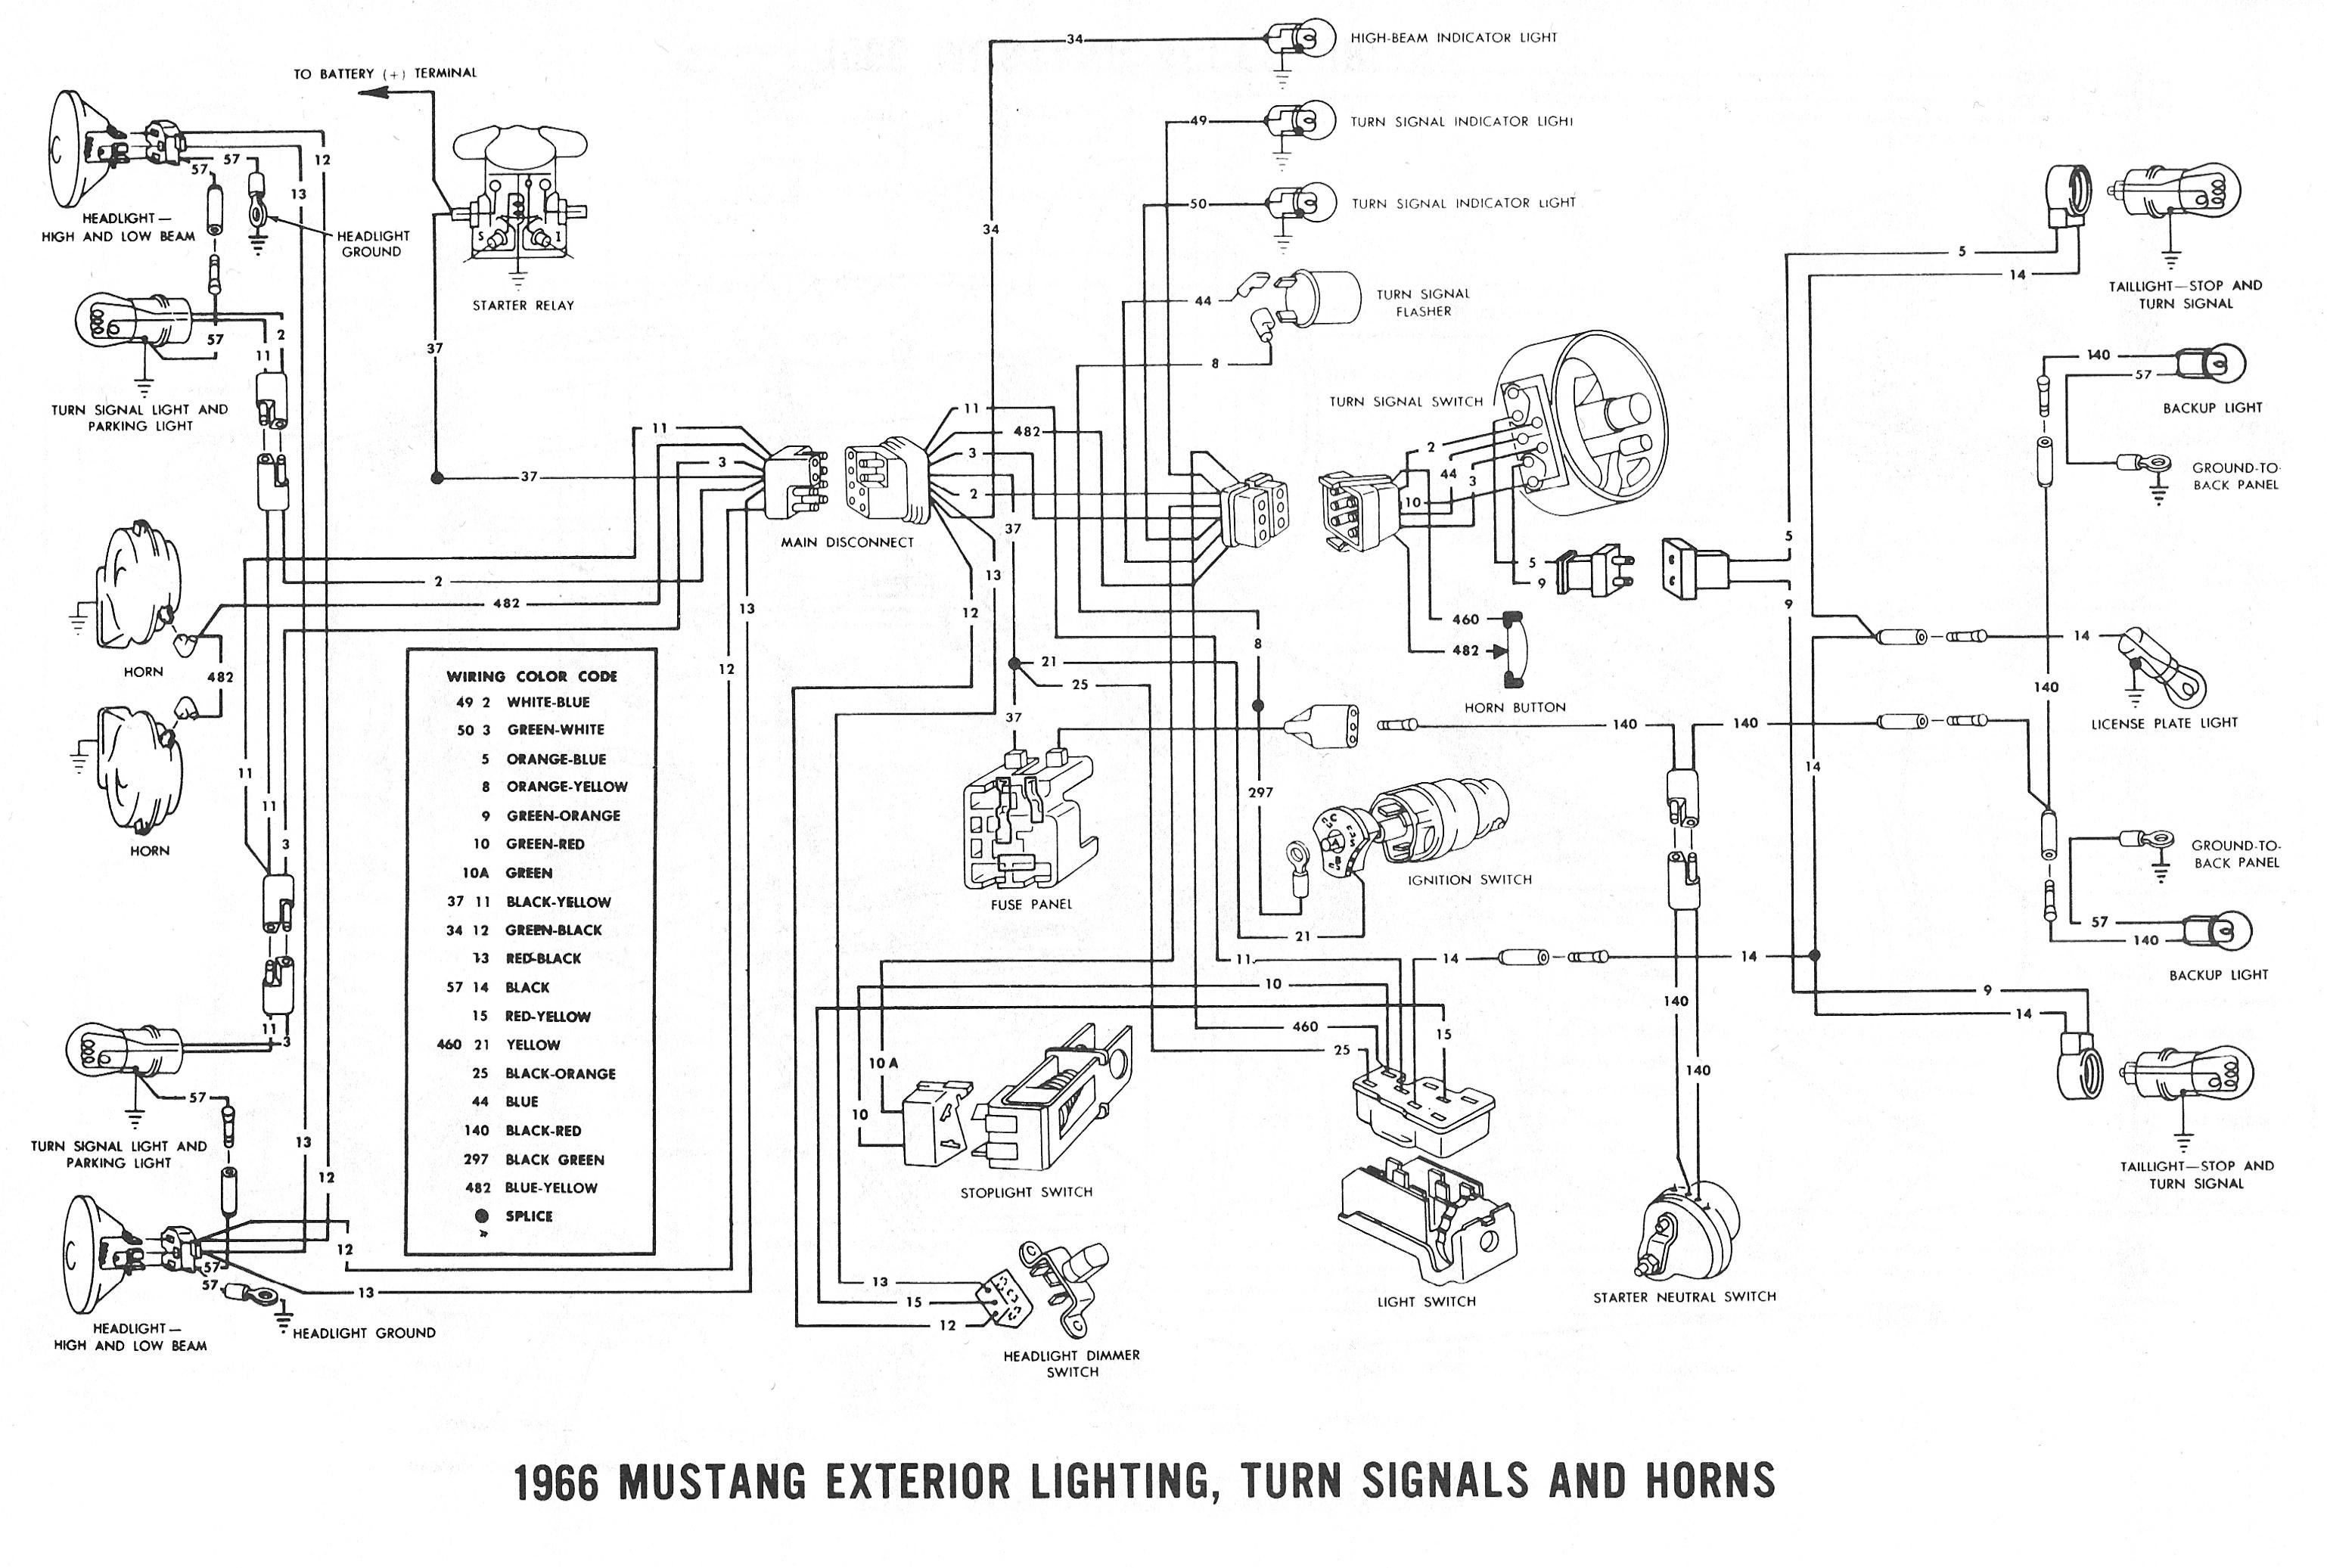 1967 Mustang Alternator Wiring Diagram Sample 966 Gm Ignition Switch Collection Problem Refrence And